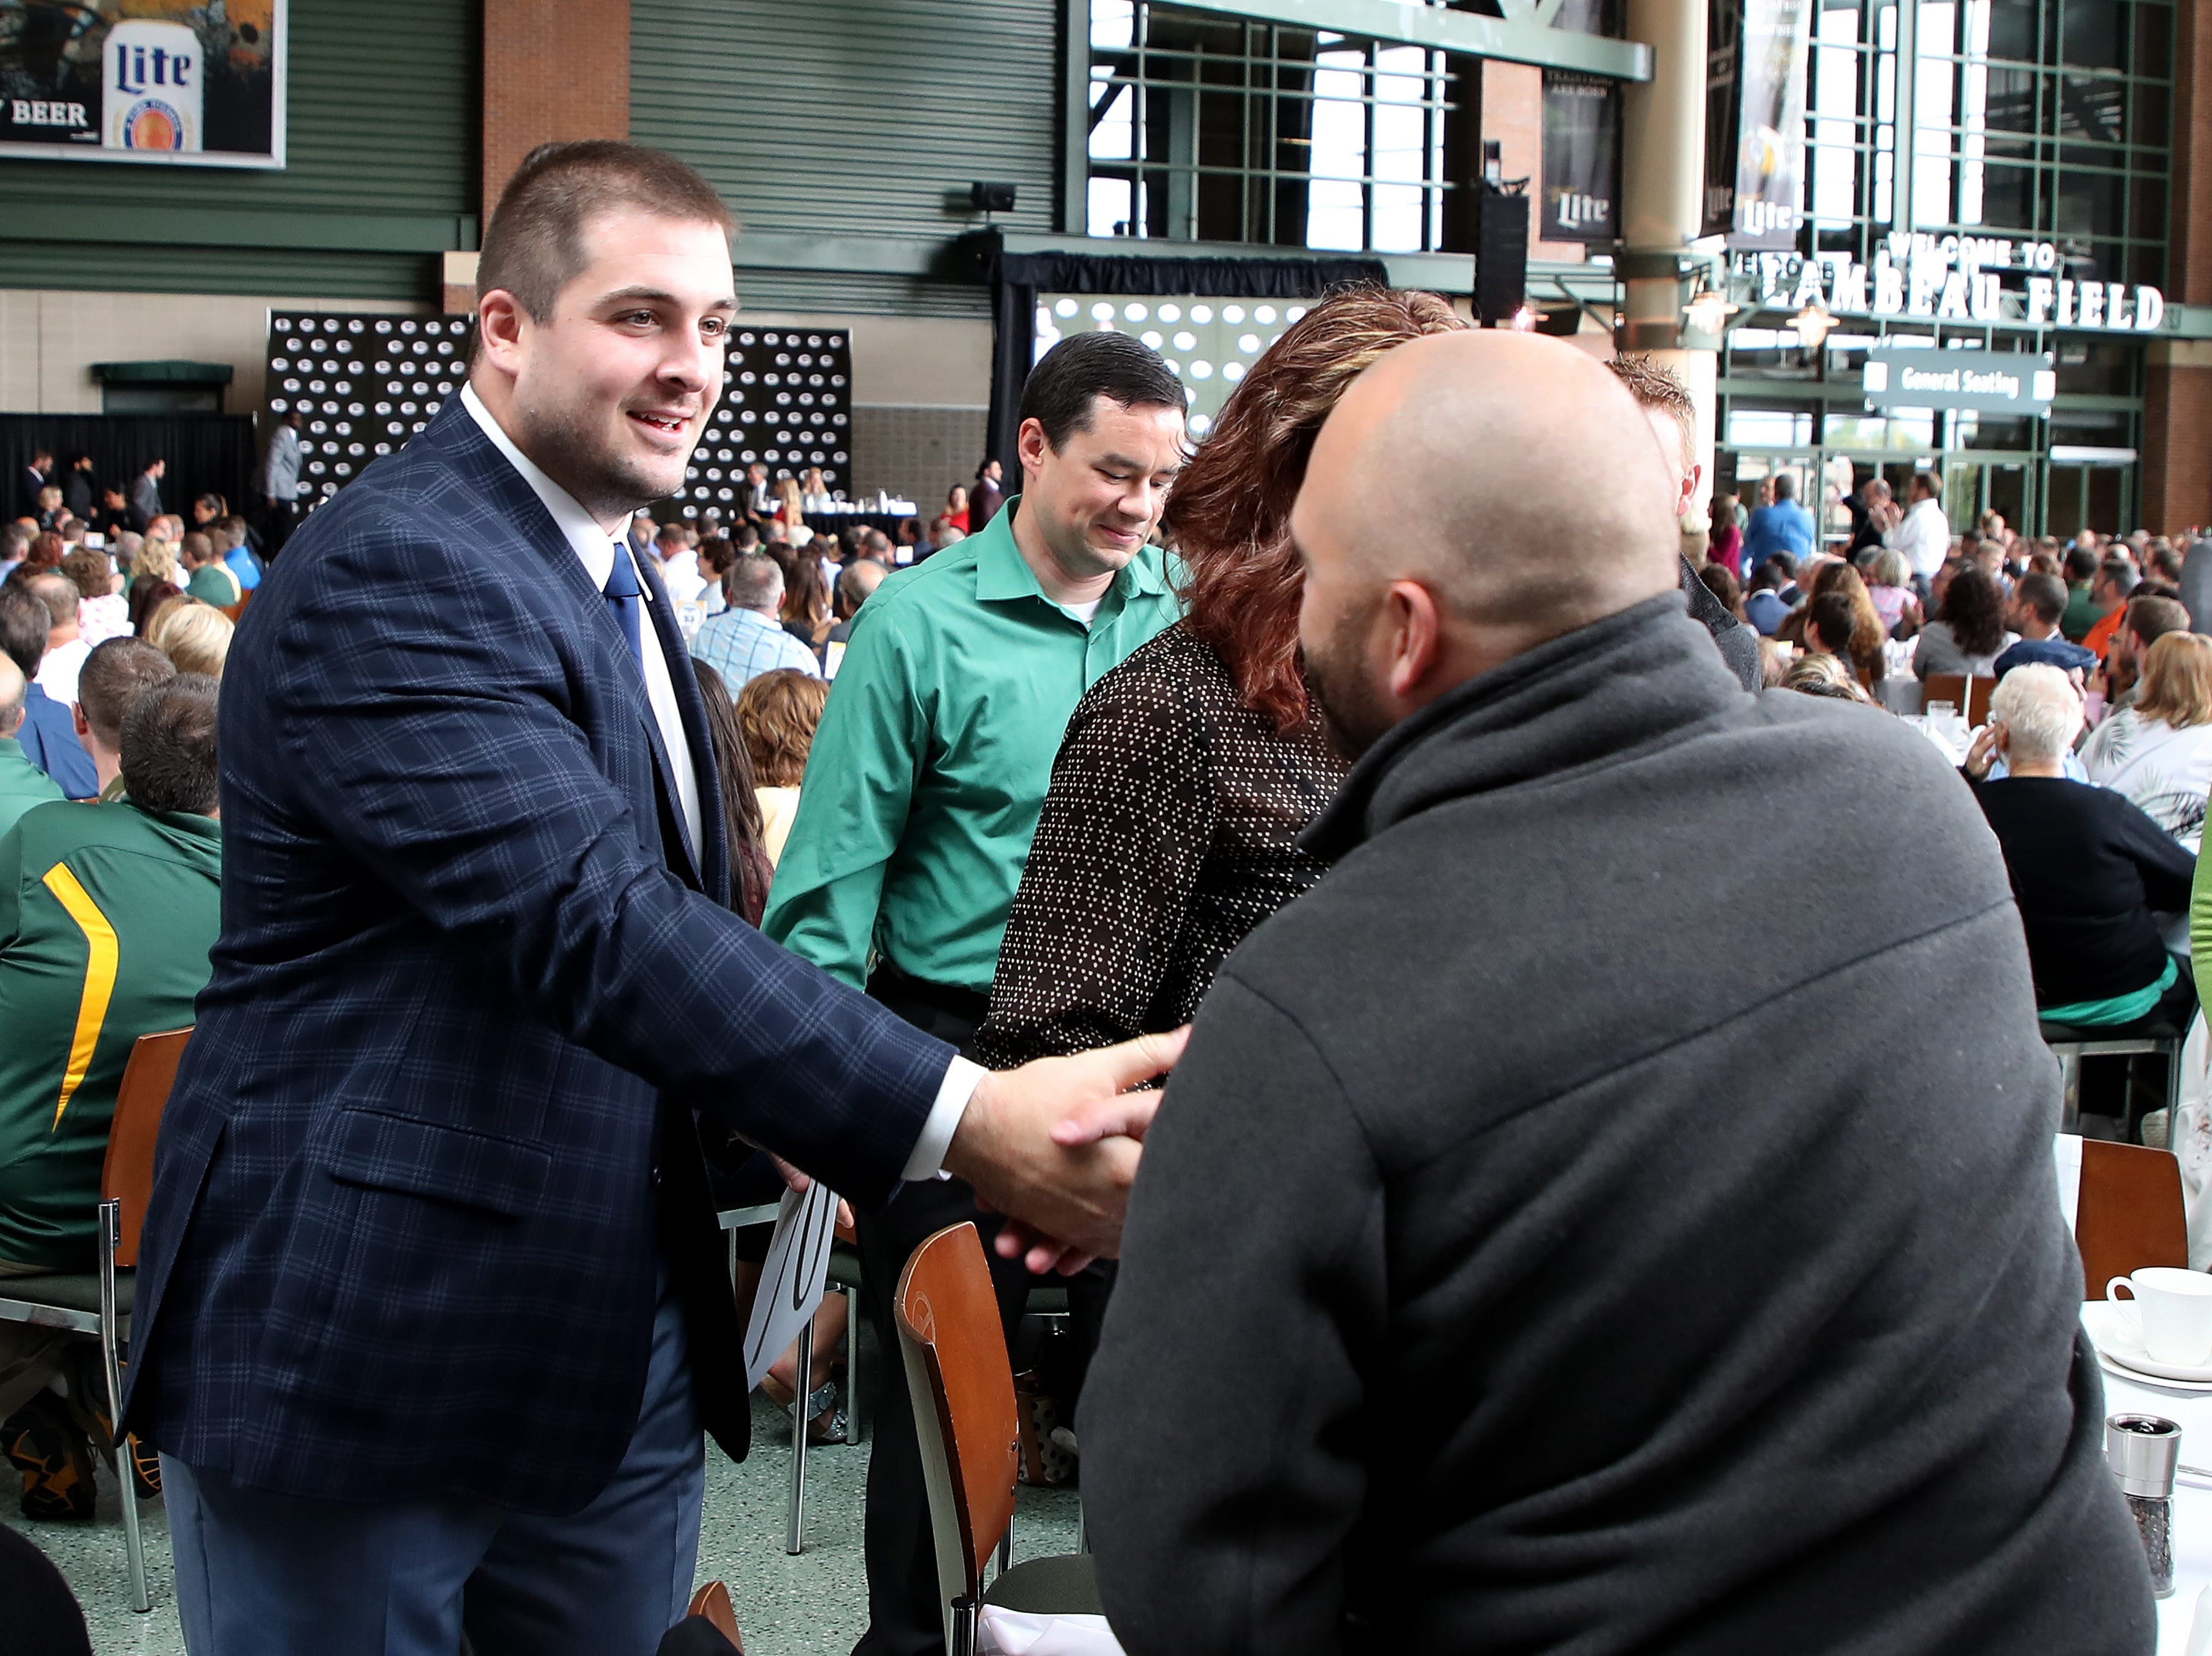 Green Bay Packers center Corey Linsley (63) during the Green Bay Chamber of Commerce Welcome Back Packers Luncheon at Lambeau Field Wednesday, August 29, 2018 in Green Bay, Wis.